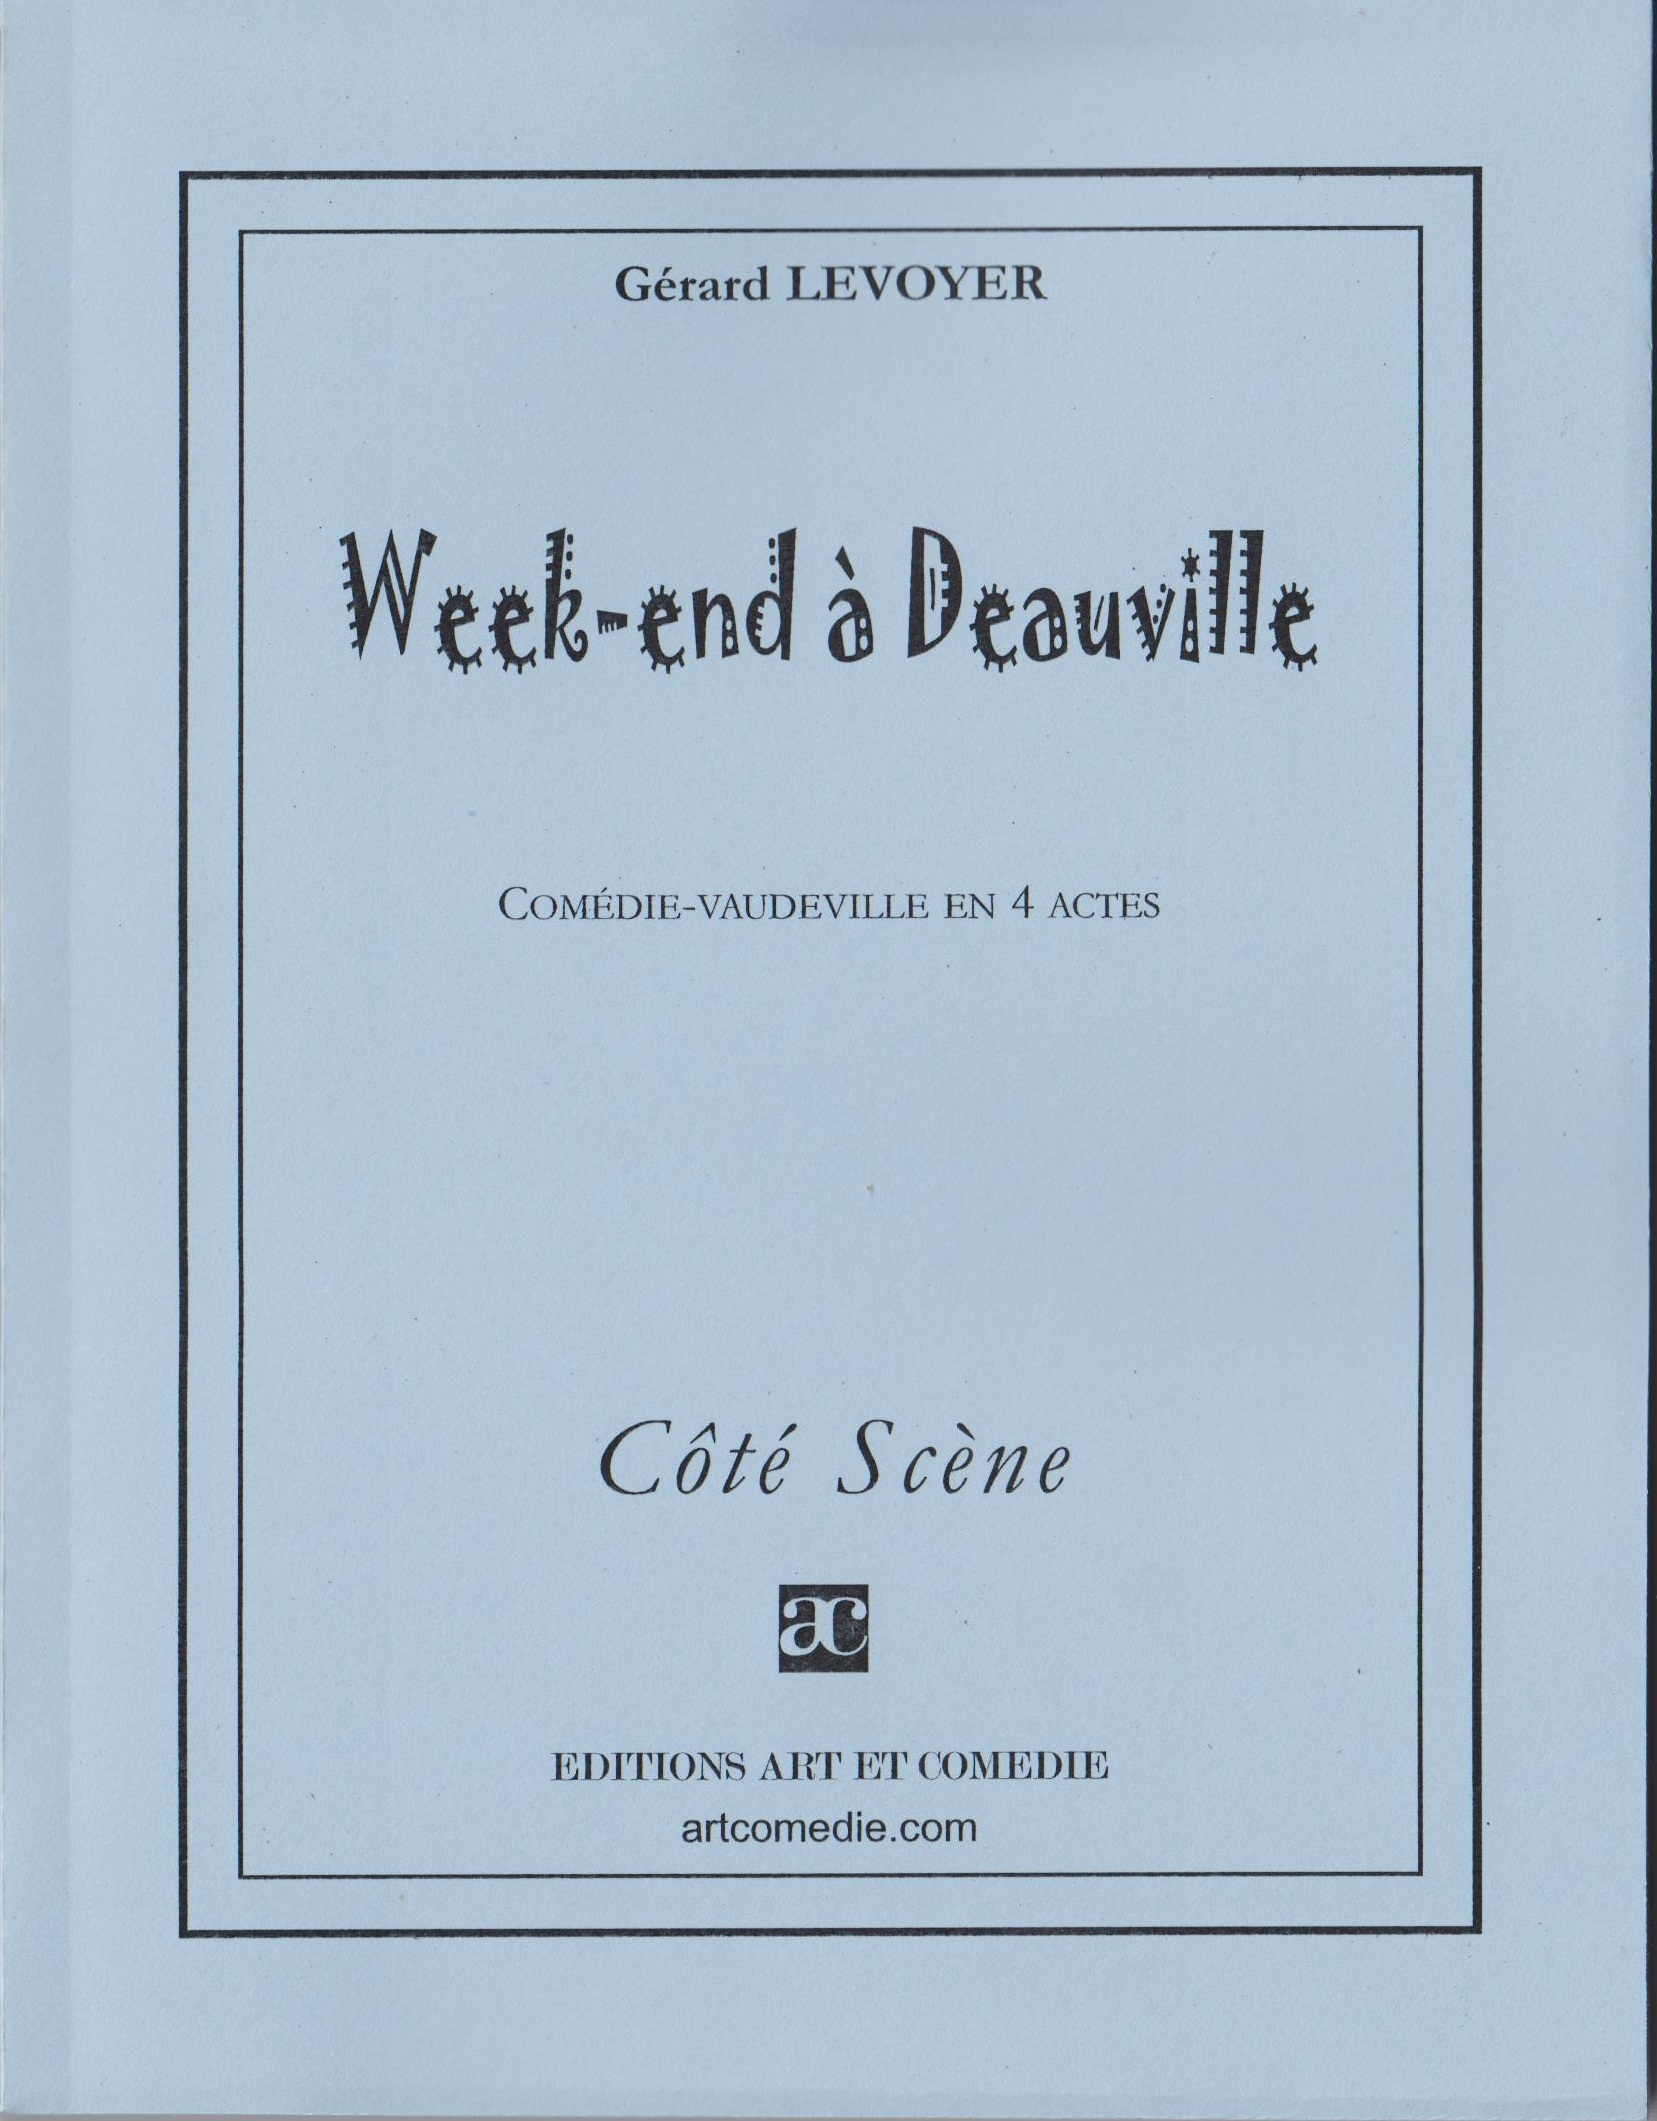 WEEK-END A DEAUVILLE